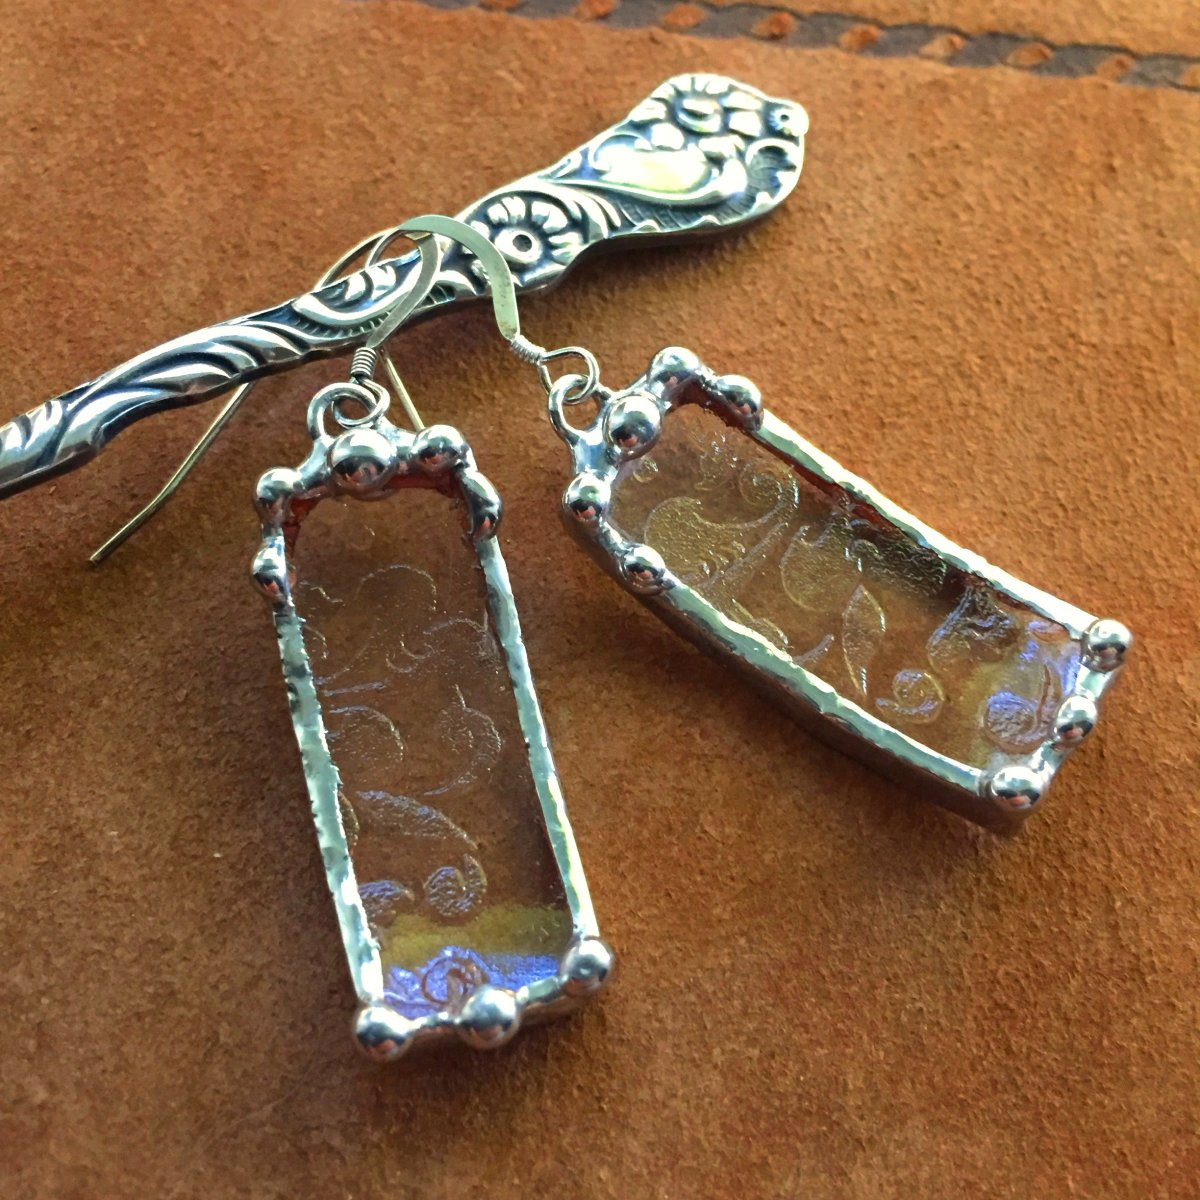 A pair of earrings crafted from Depression glass.